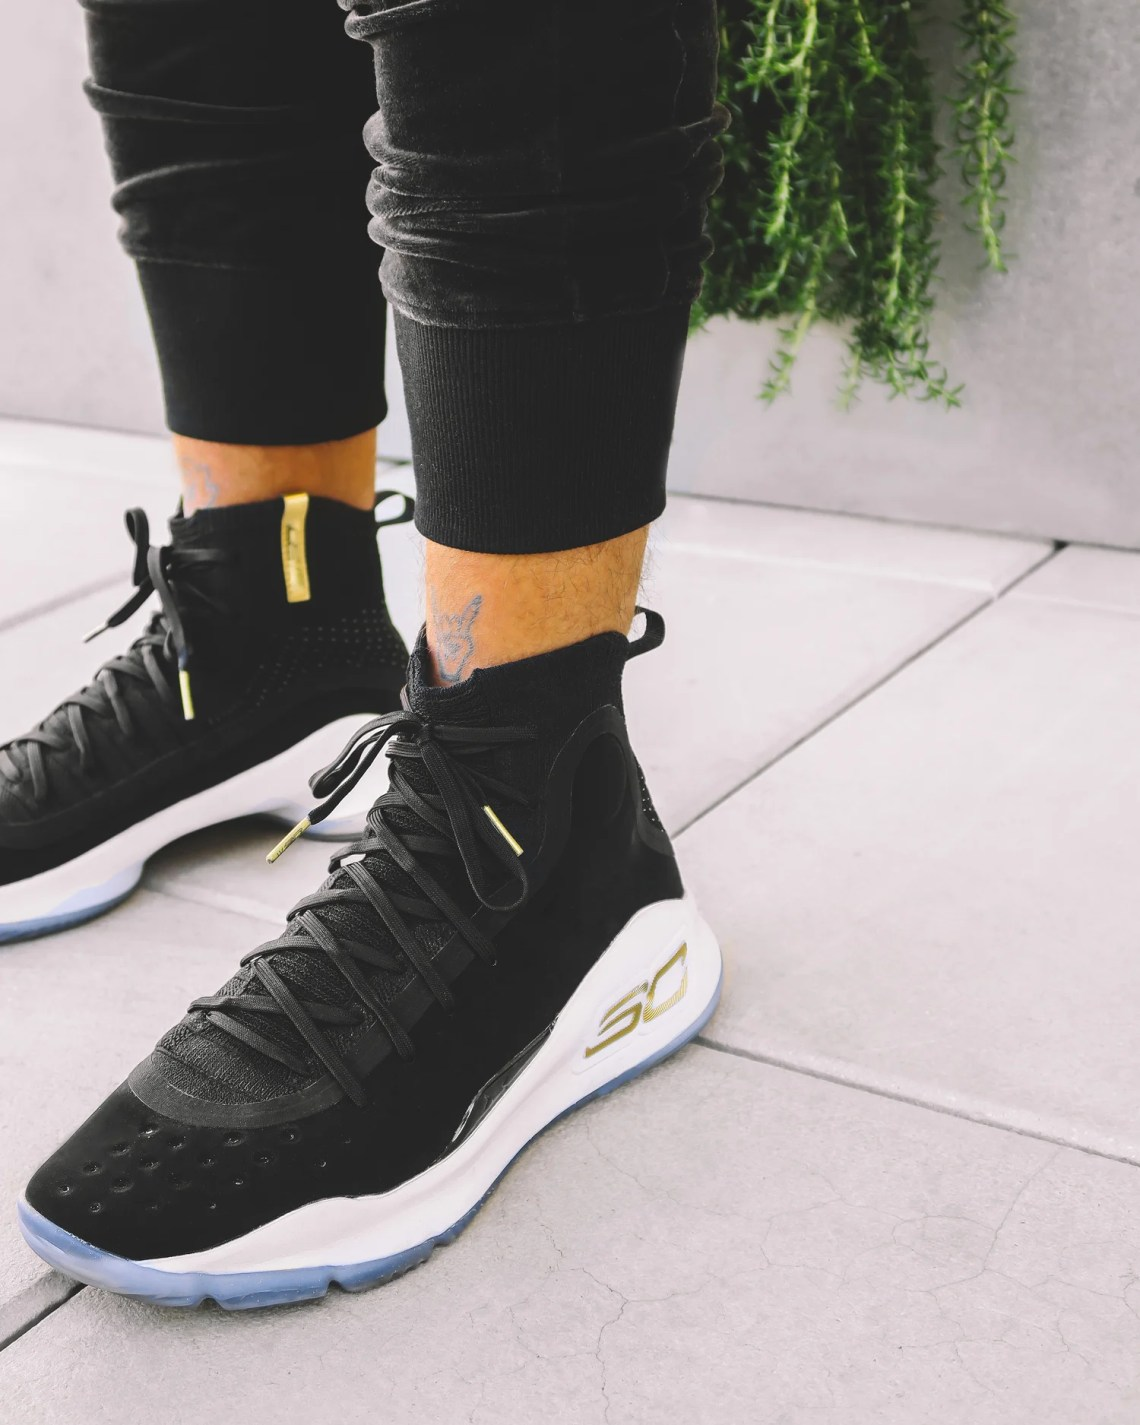 online store 65341 029ff An On-Foot Look at the Under Armour Curry 4